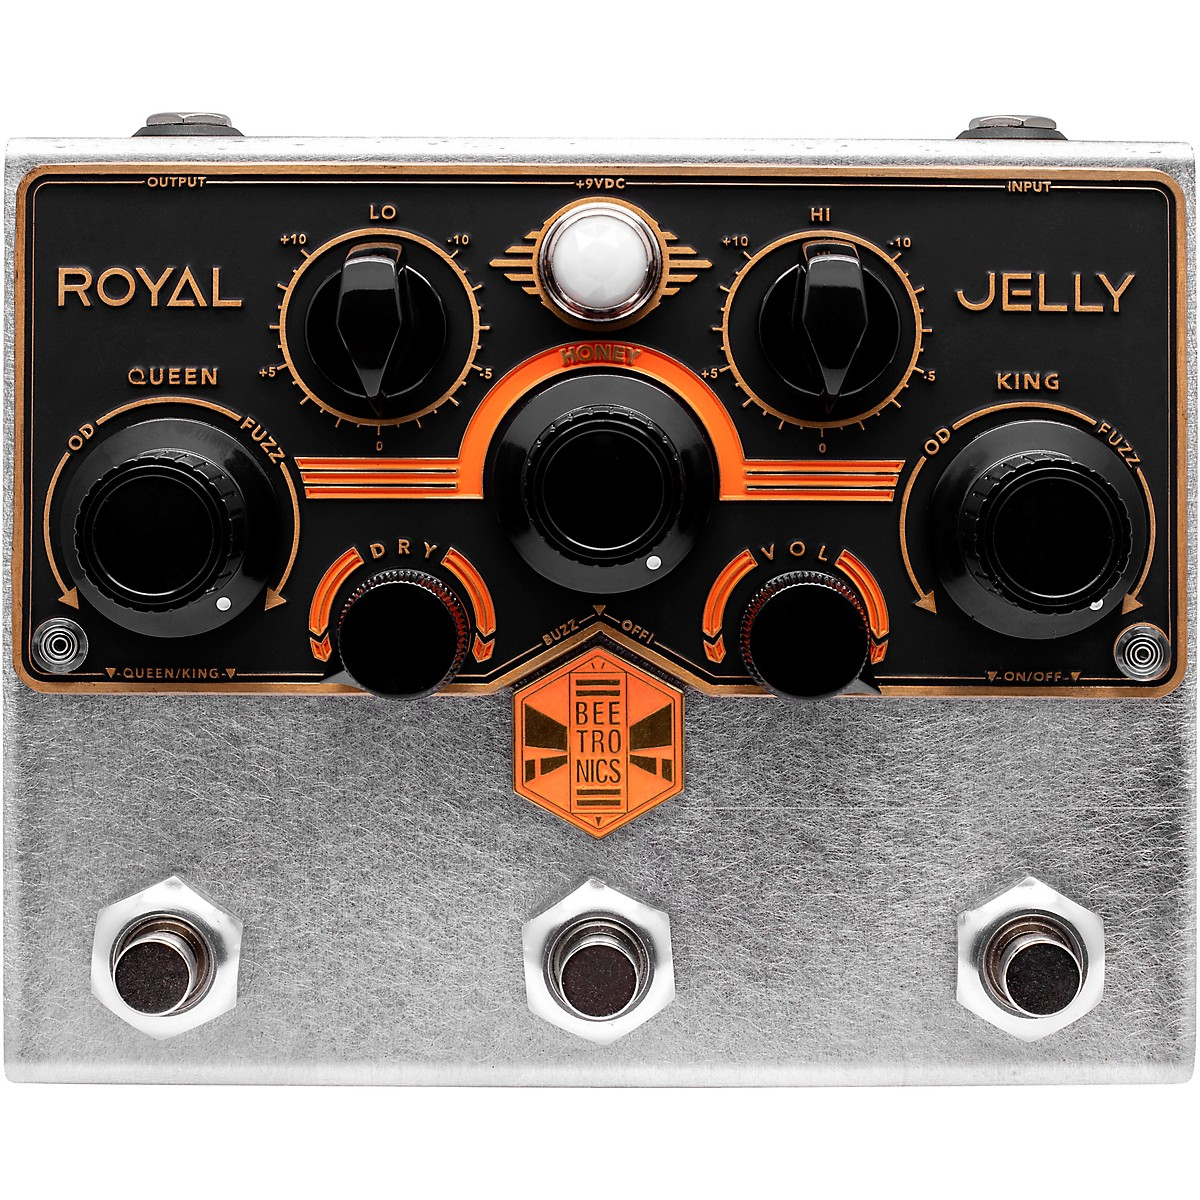 Beetronics FX Royal Jelly Royal Series Overdrive Fuzz Effects Pedal